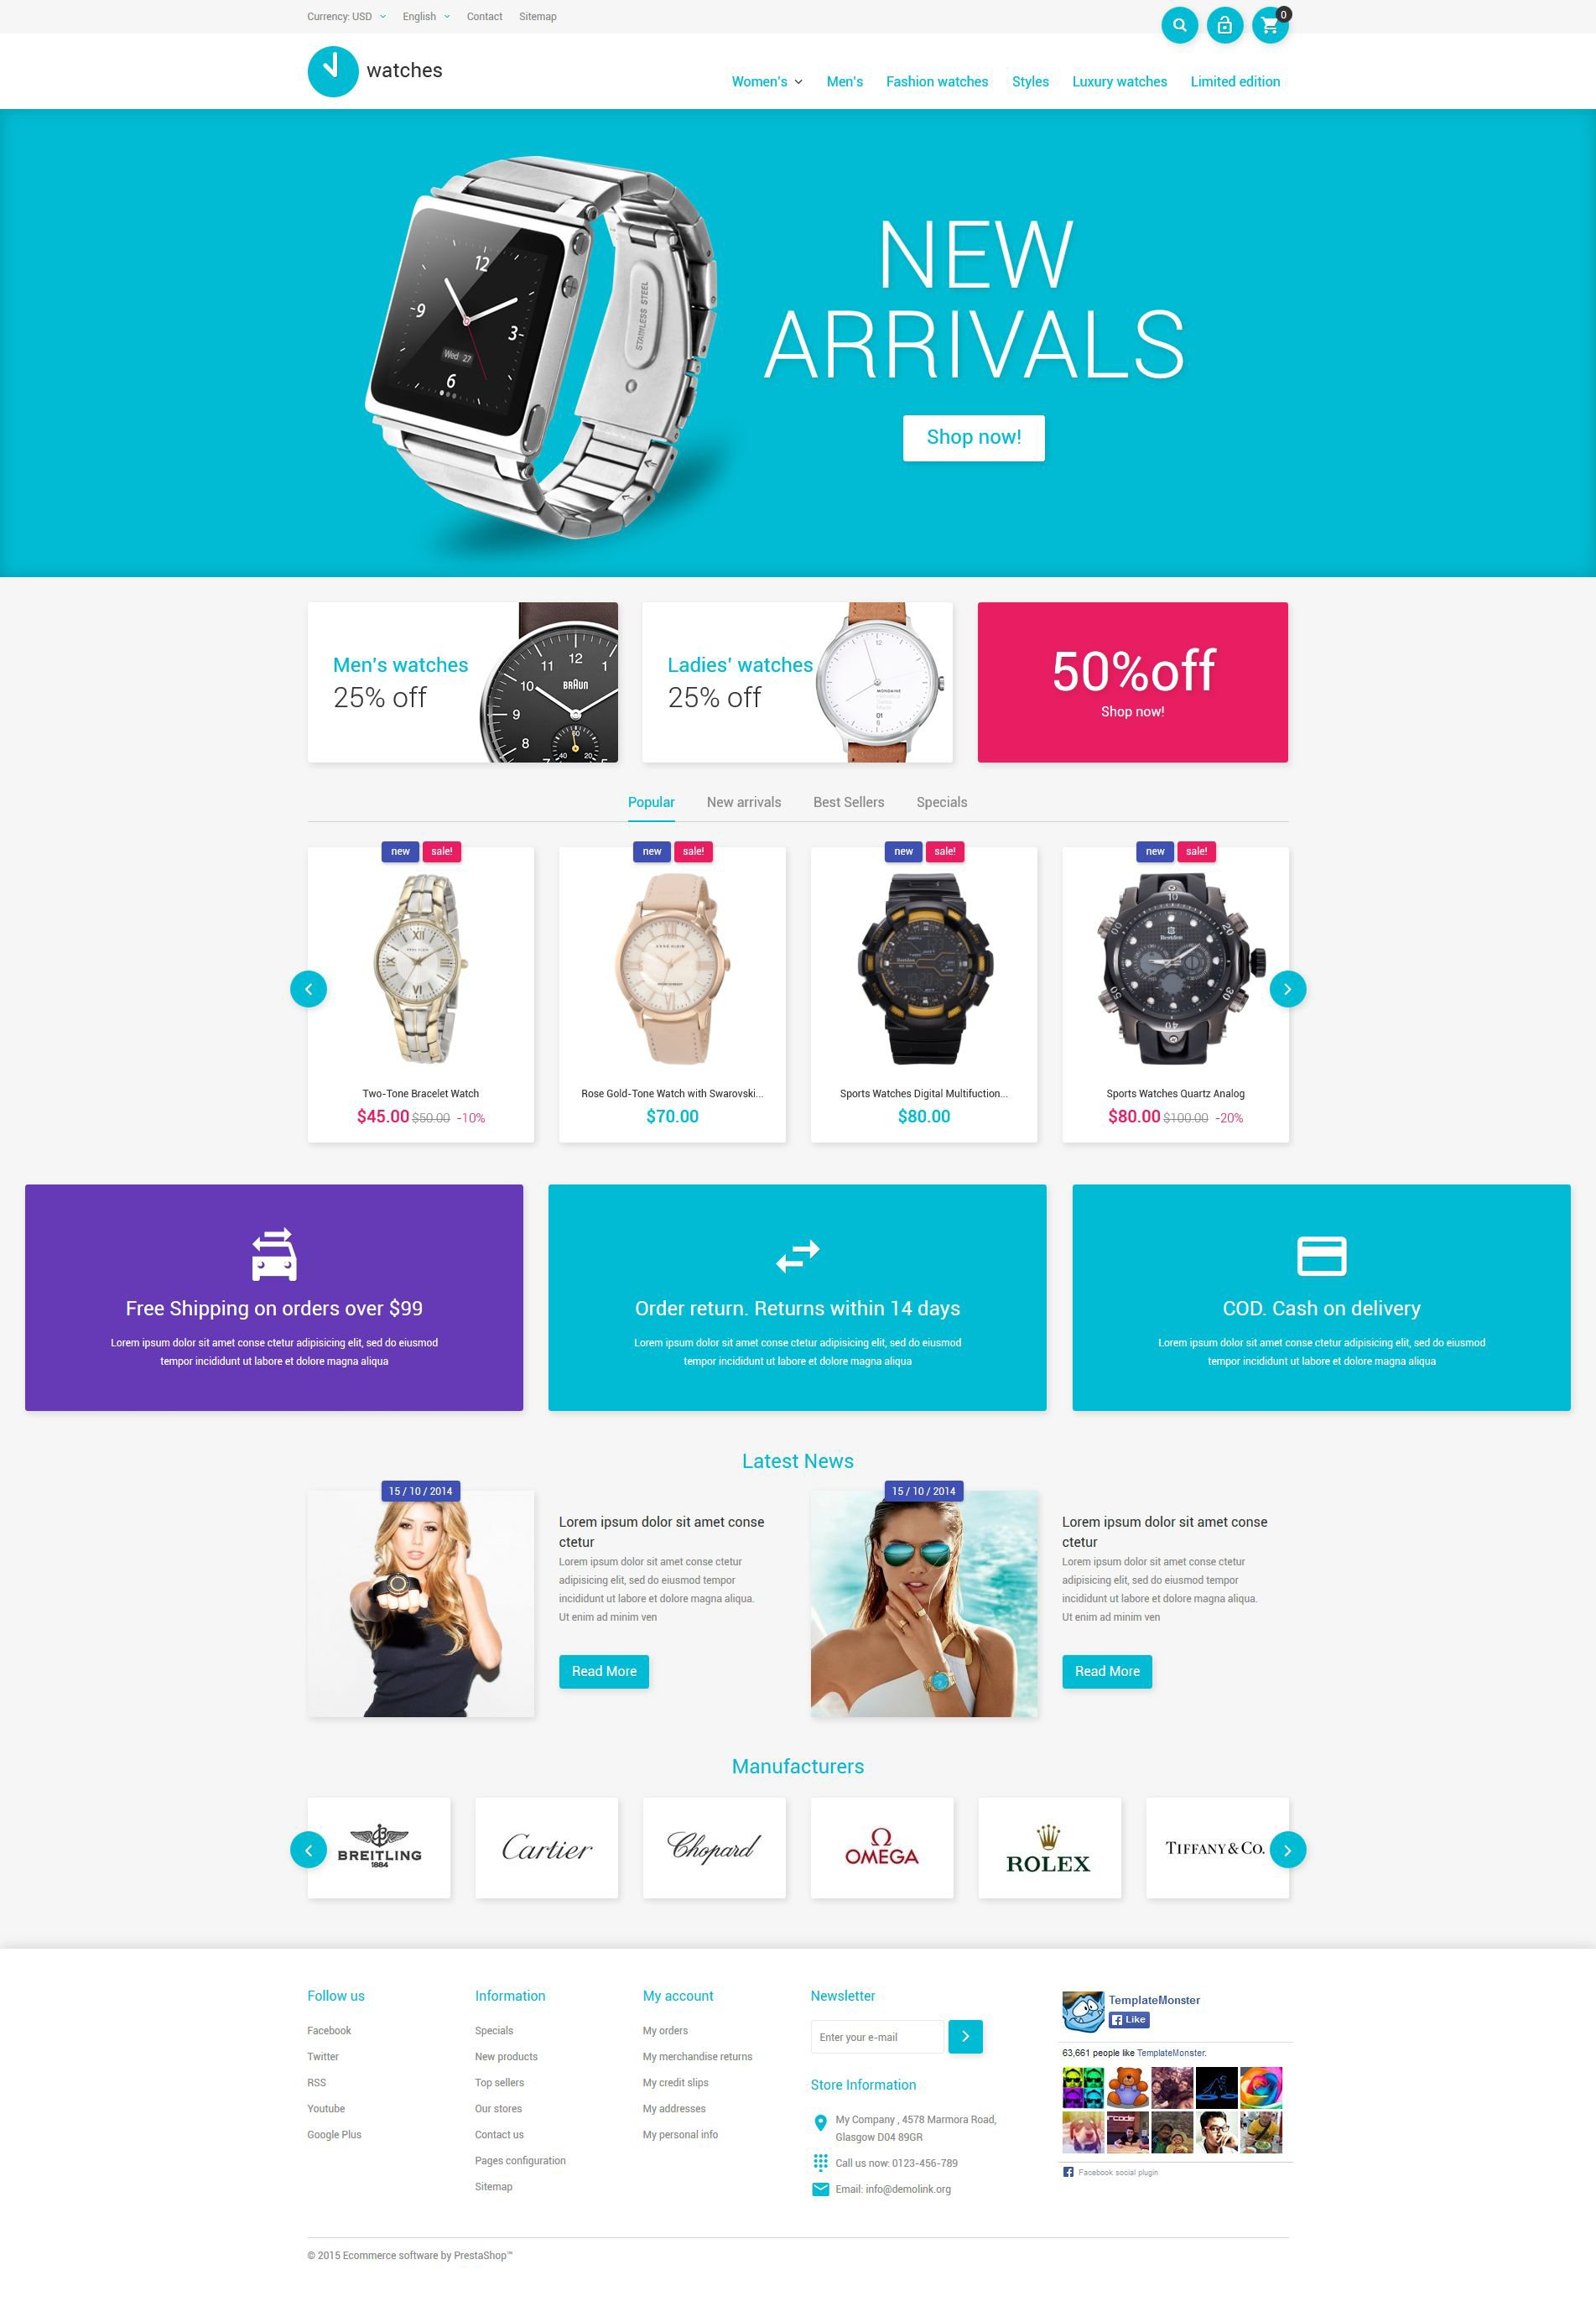 The Watches Online Store PrestaShop Design 53668, one of the best PrestaShop themes of its kind (fashion, most popular), also known as watches online store PrestaShop template, shopping PrestaShop template, purchase PrestaShop template, fashion PrestaShop template, sportive PrestaShop template, elegance PrestaShop template, feminine design company PrestaShop template, producer PrestaShop template, products PrestaShop template, pointers PrestaShop template, collection PrestaShop template, order PrestaShop template, history PrestaShop template, tradition PrestaShop template, Switzerland Swiss watches PrestaShop template, Omega Longines Tissot Rolex Chrono Candino clock PrestaShop template, face and related with watches online store, shopping, purchase, fashion, sportive, elegance, feminine design company, producer, products, pointers, collection, order, history, tradition, Switzerland Swiss watches, Omega Longines Tissot Rolex Chrono Candino clock, face, etc.